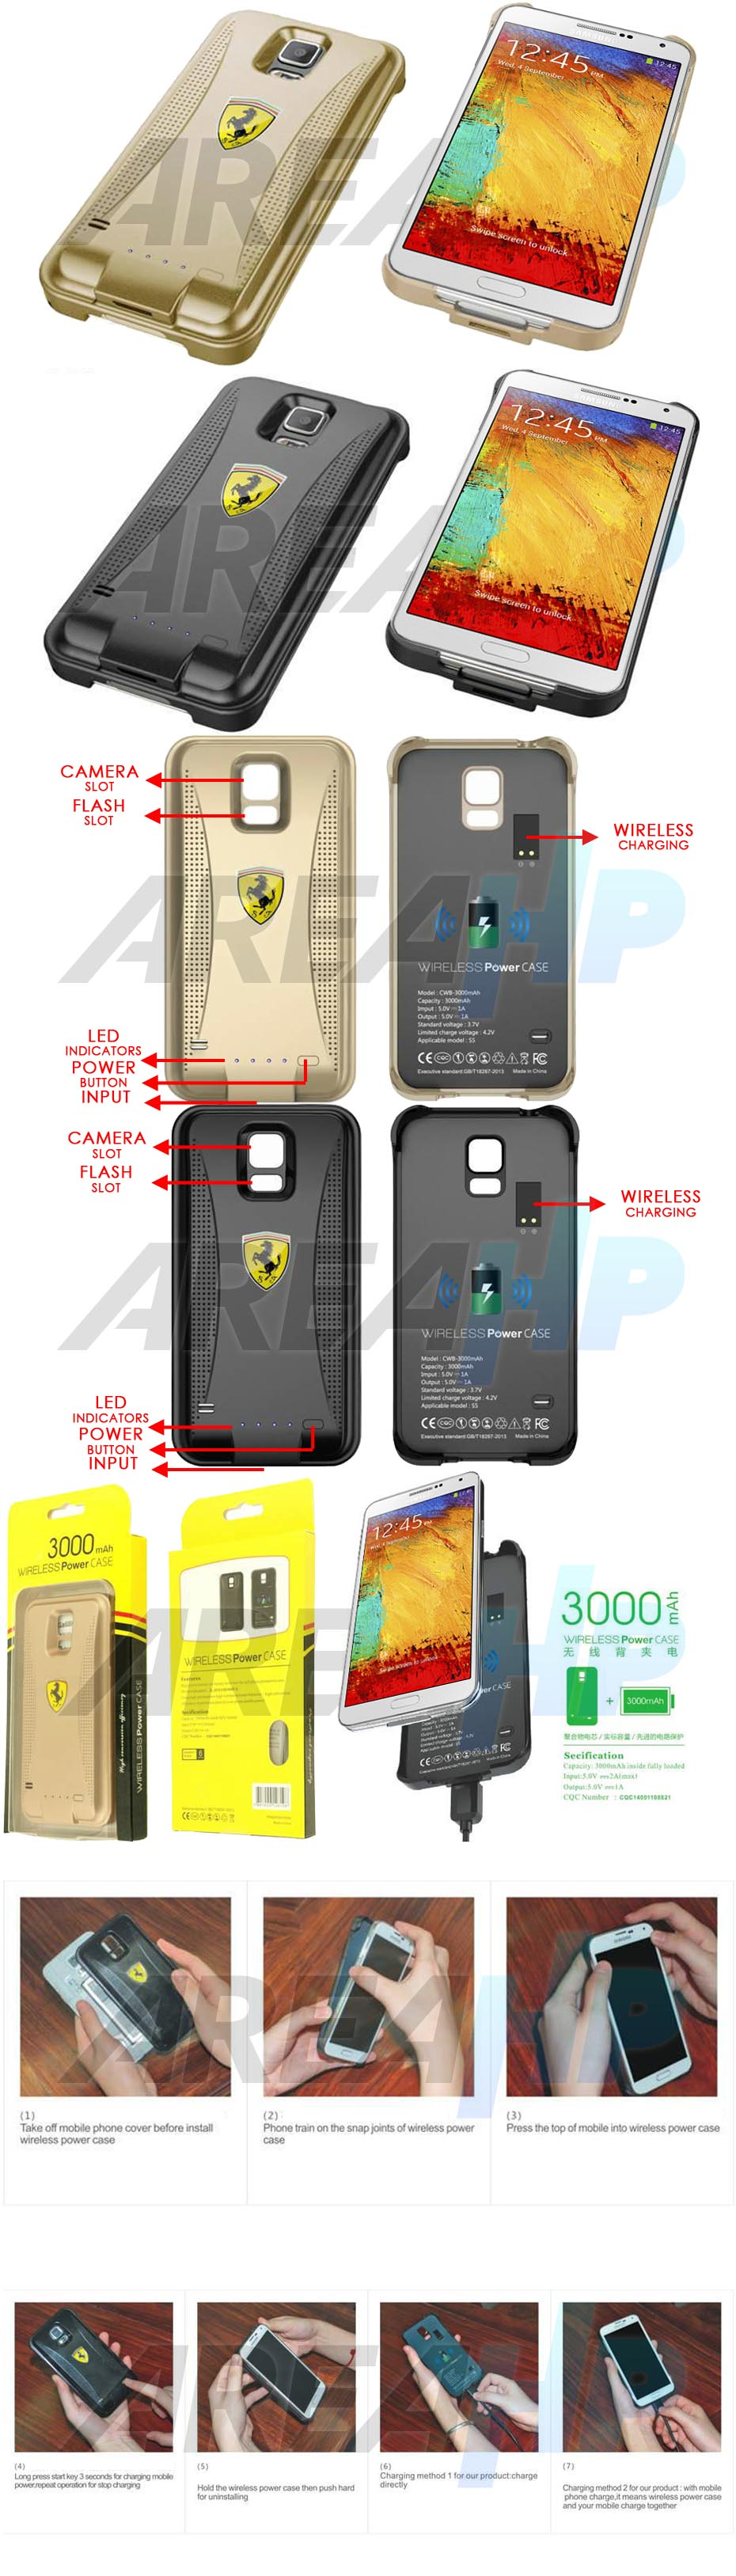 Keva Power Case Wireless 3000mAh For Samsung Galaxy Note3 N9000 Overview